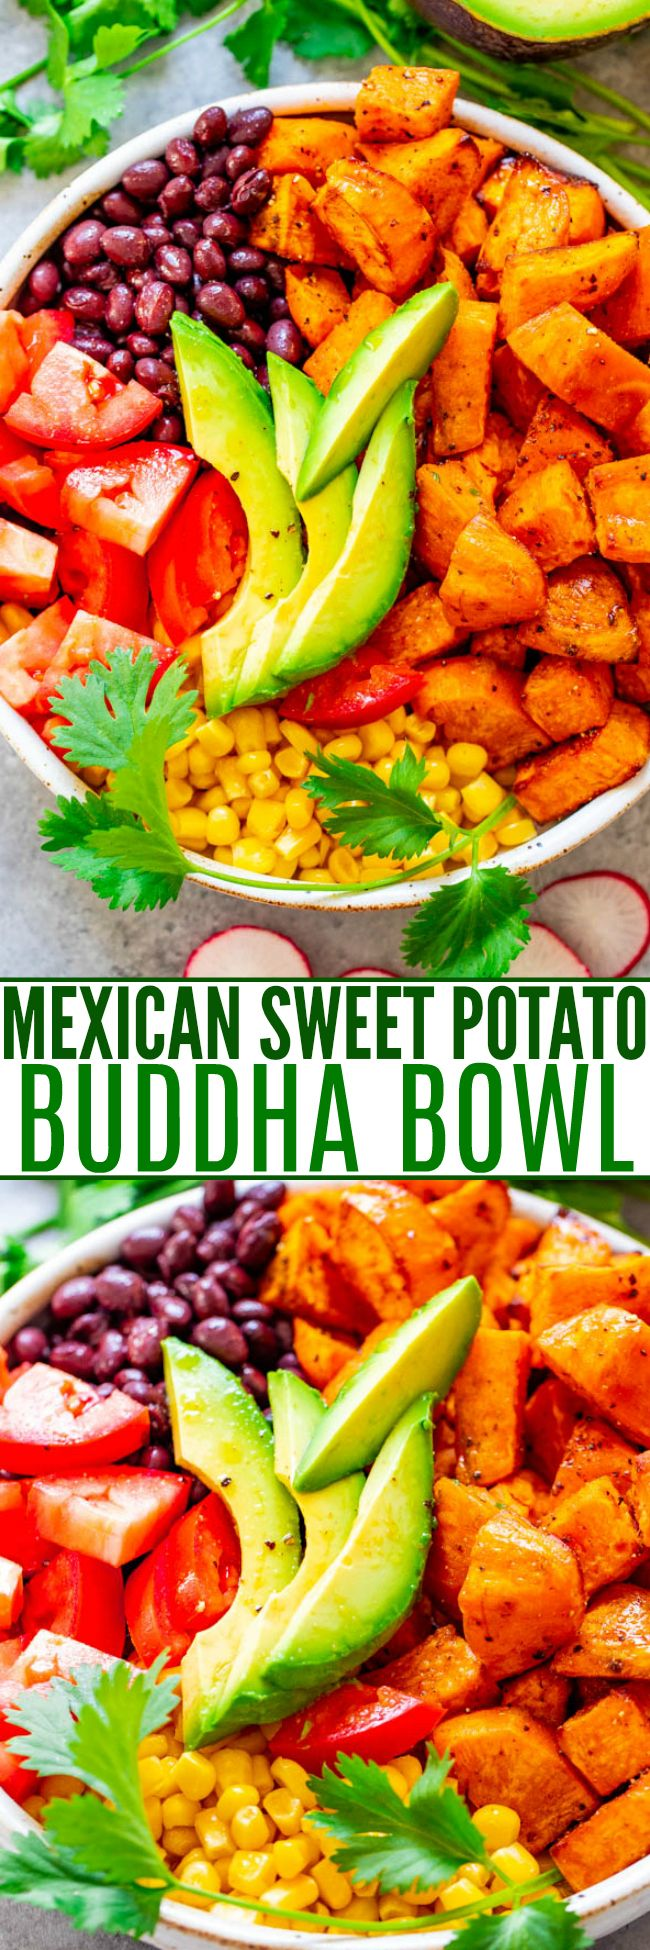 Mexican Sweet Potato and Black Bean Buddha Bowl – A HEALTHY and EASY alternative to a salad!! Loaded with Mexican-inspired ingredients and topped with a light lime-cumin vinaigrette! Ready in 20 minutes and perfect for MEAL PREPPING!!